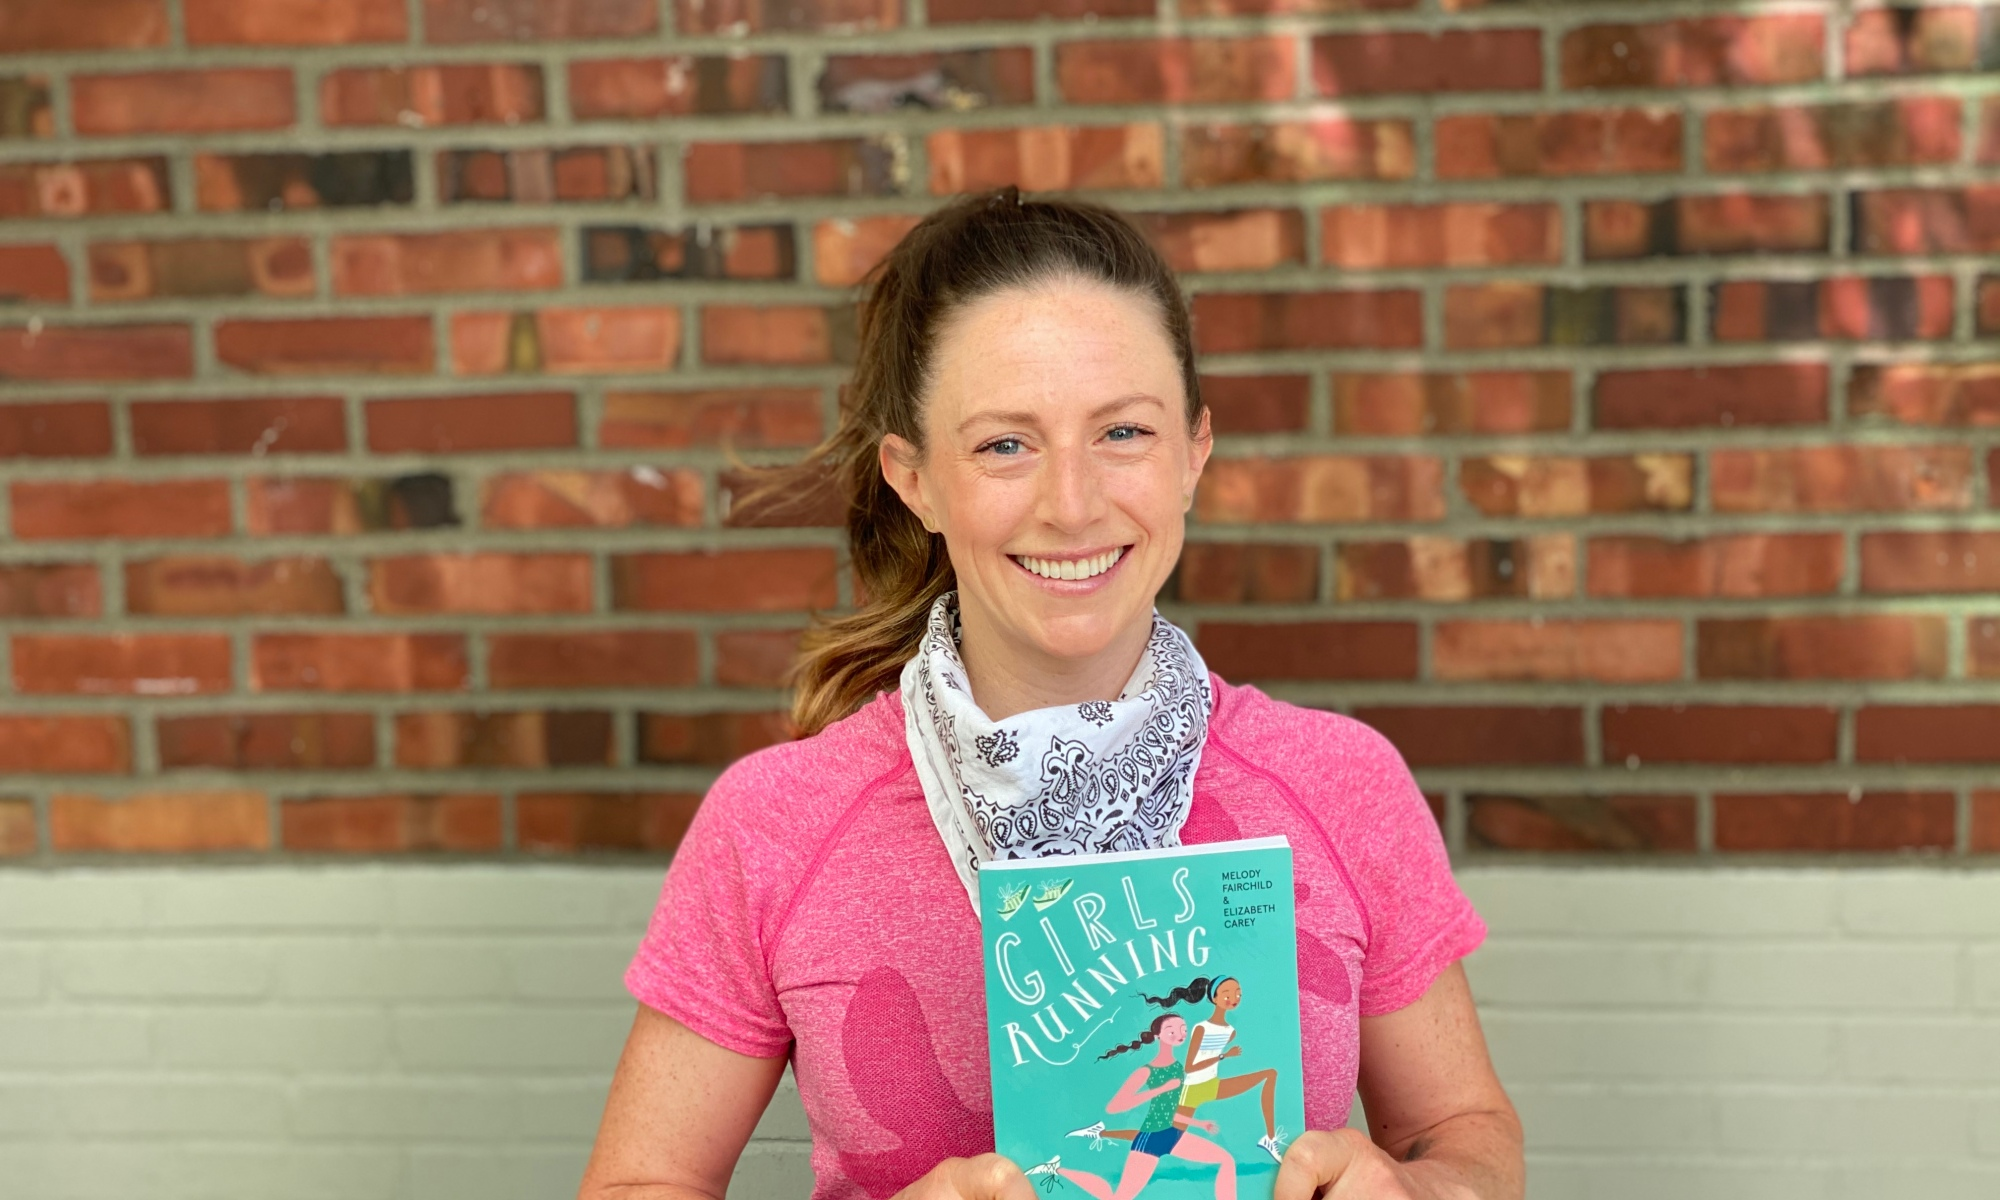 Author Elizabeth Carey holds her book Girls Running: All You Need To Strive, Thrive, and Run Your Best, co-authored with Melody Fairchild